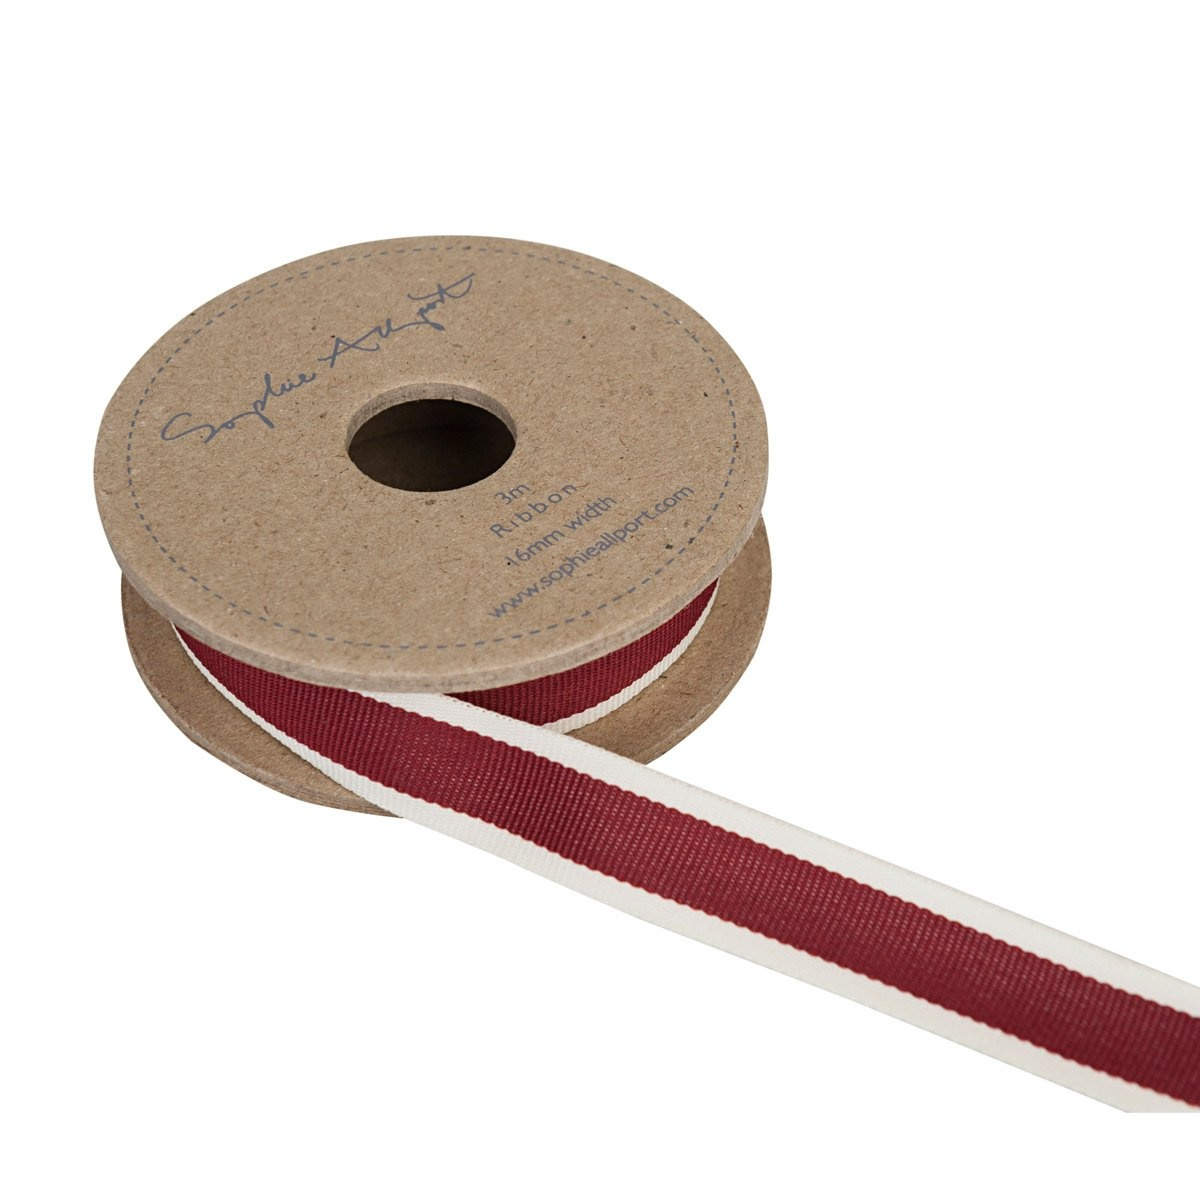 Sophie Allport Ribbon On Spool Claret Red Stripe